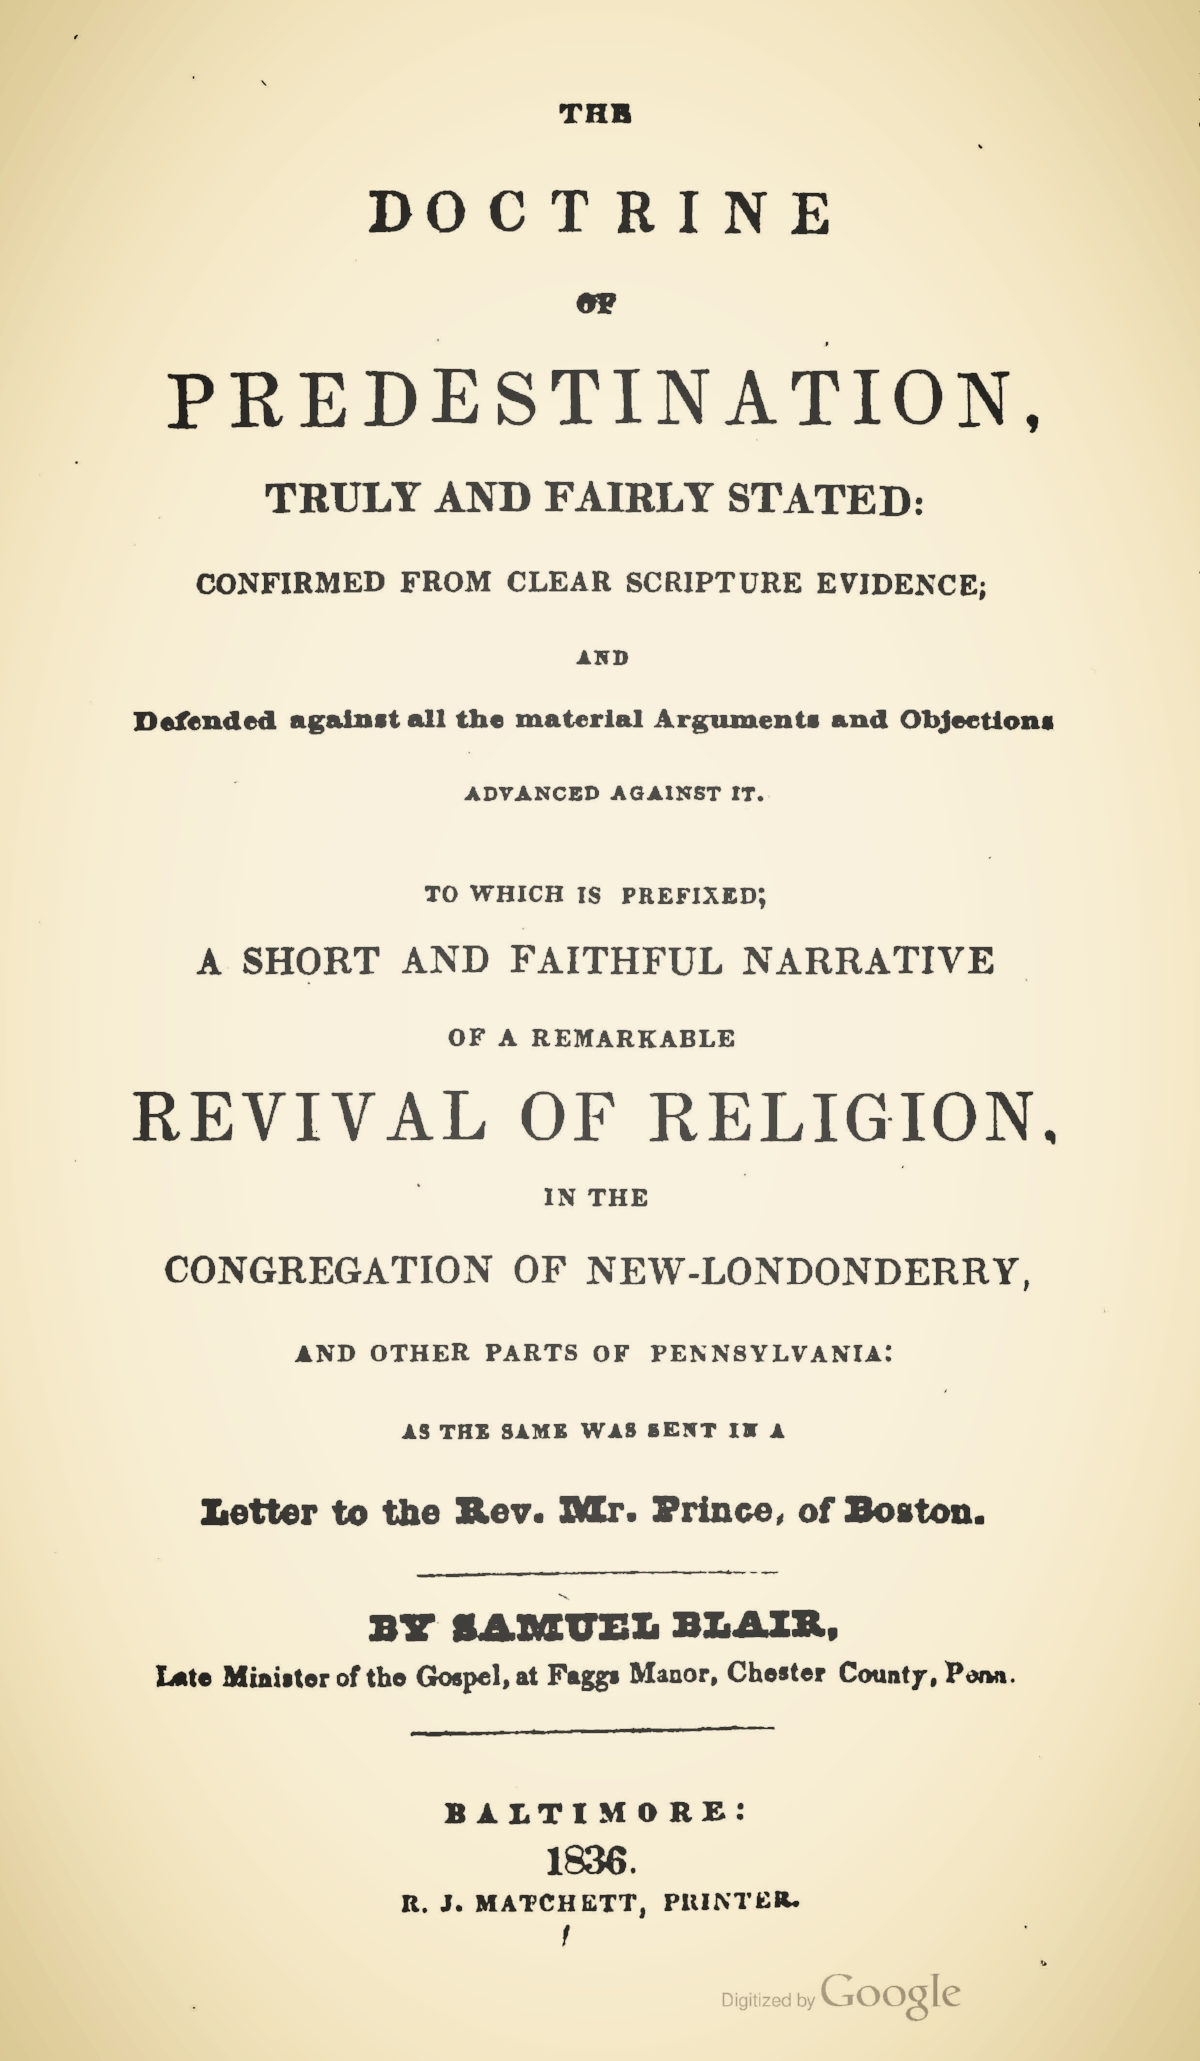 Blair, Samuel, The Doctrine of Predestination, Truly and Fairly Stated Title Page.jpg